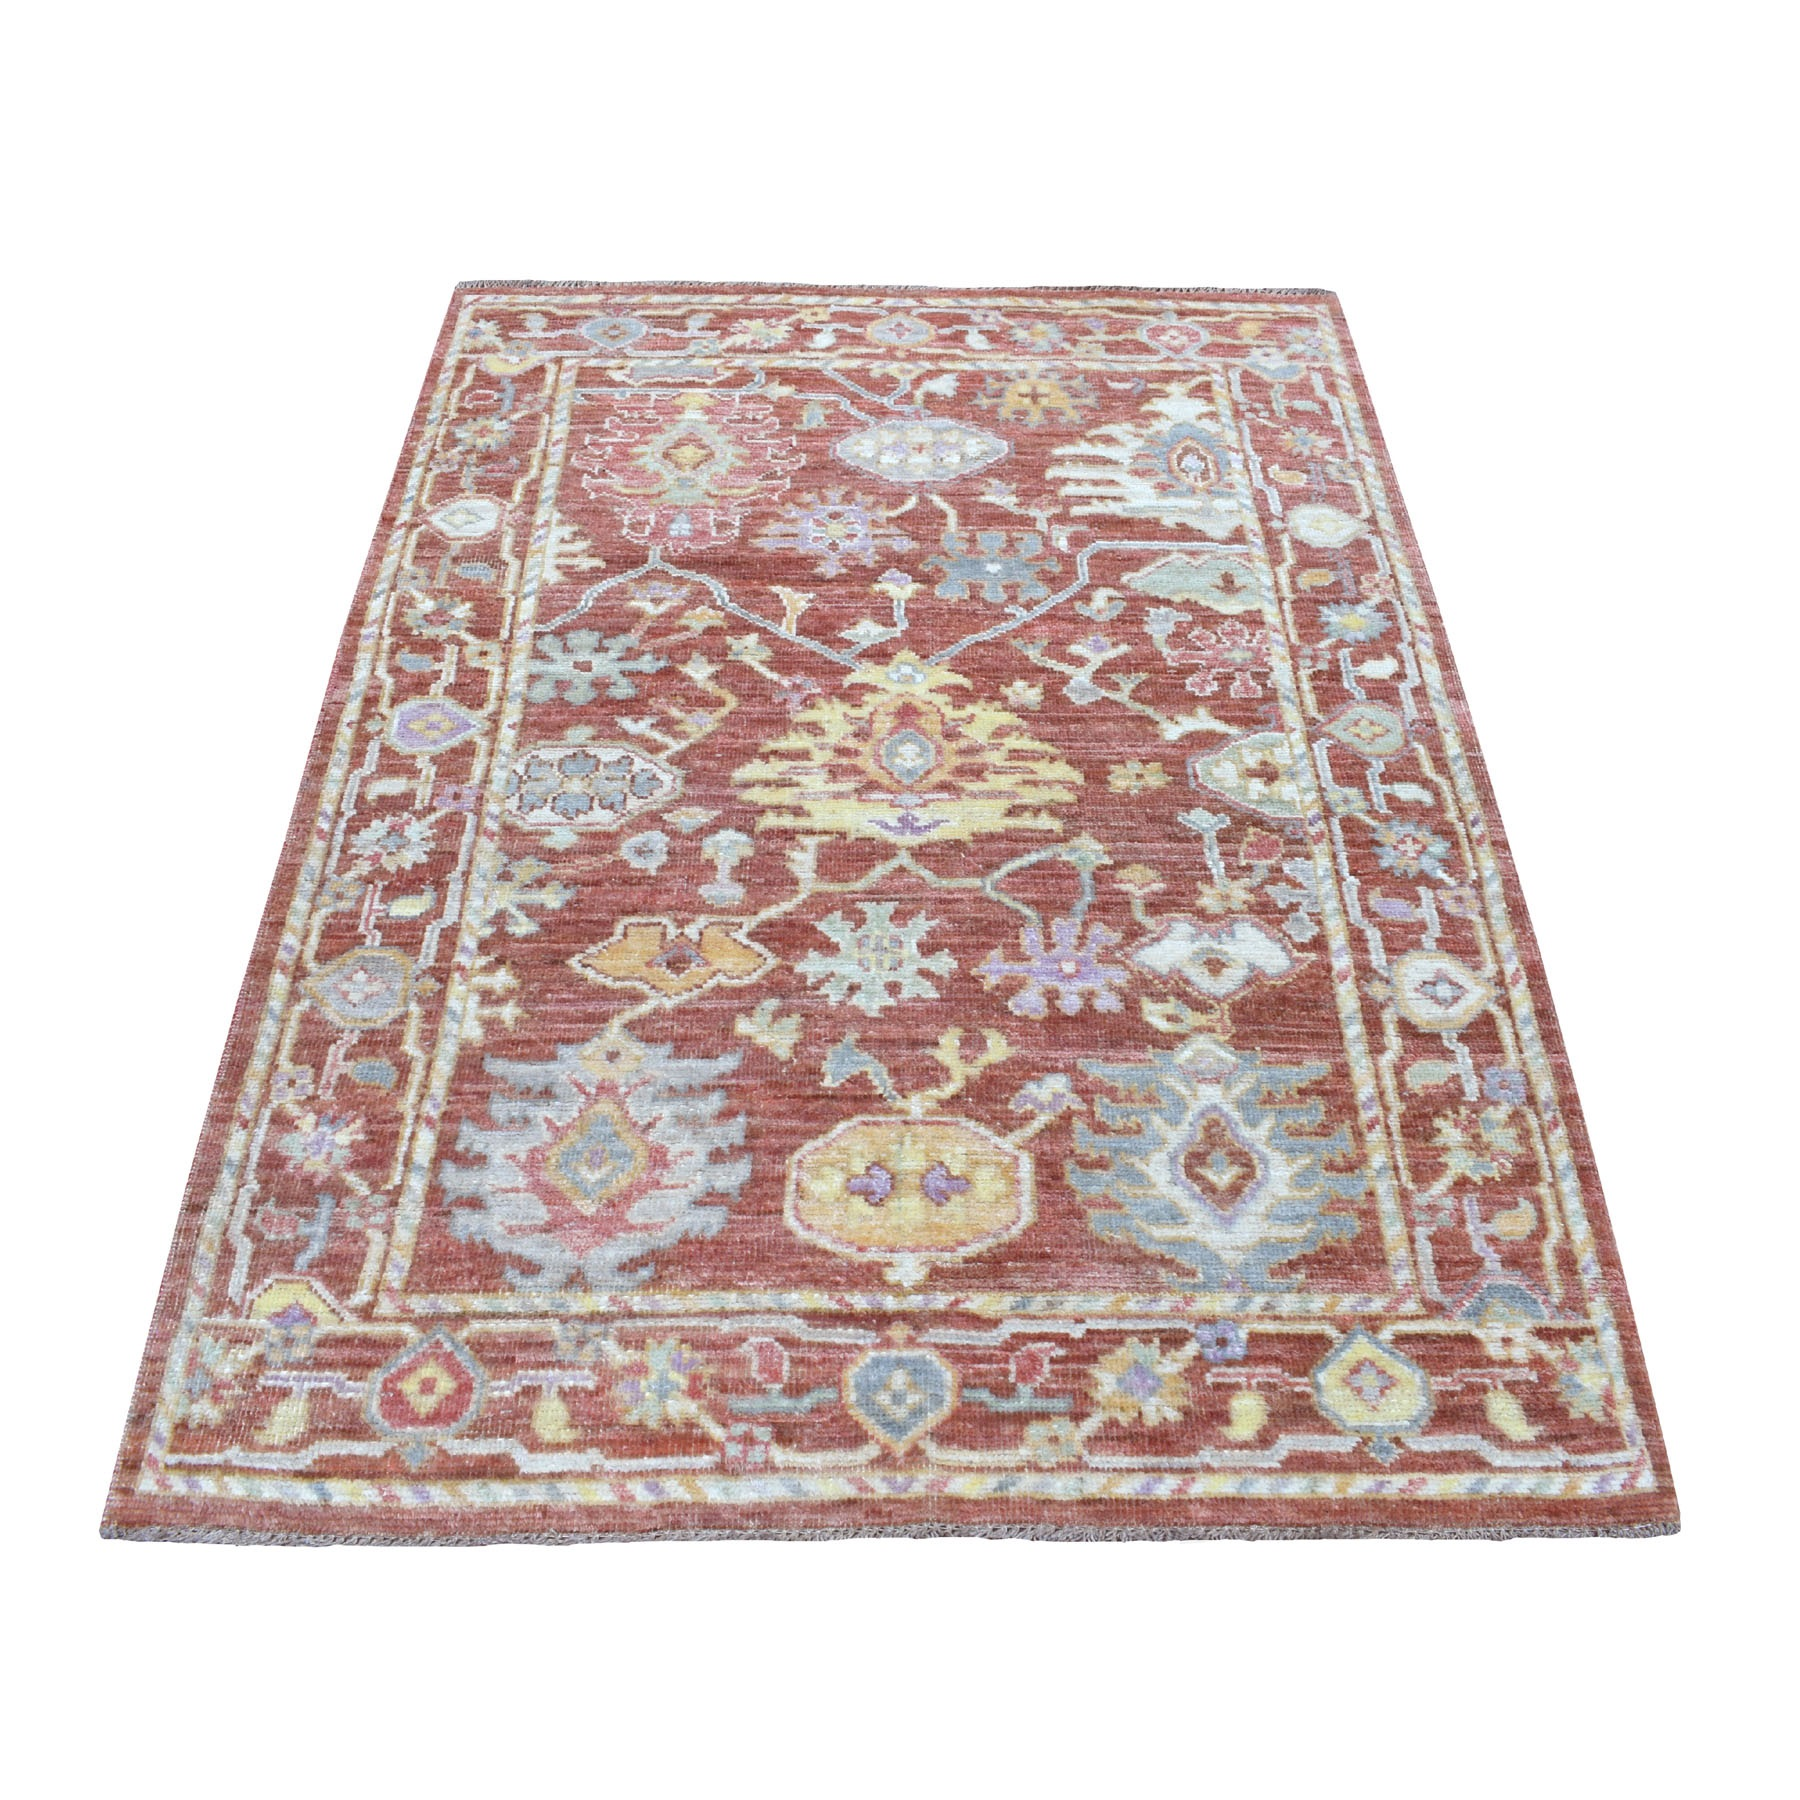 """4'1""""X6' Red Soft Velvety Wool Angora Oushak Hand Knotted Oriental Rug moaedeb6"""